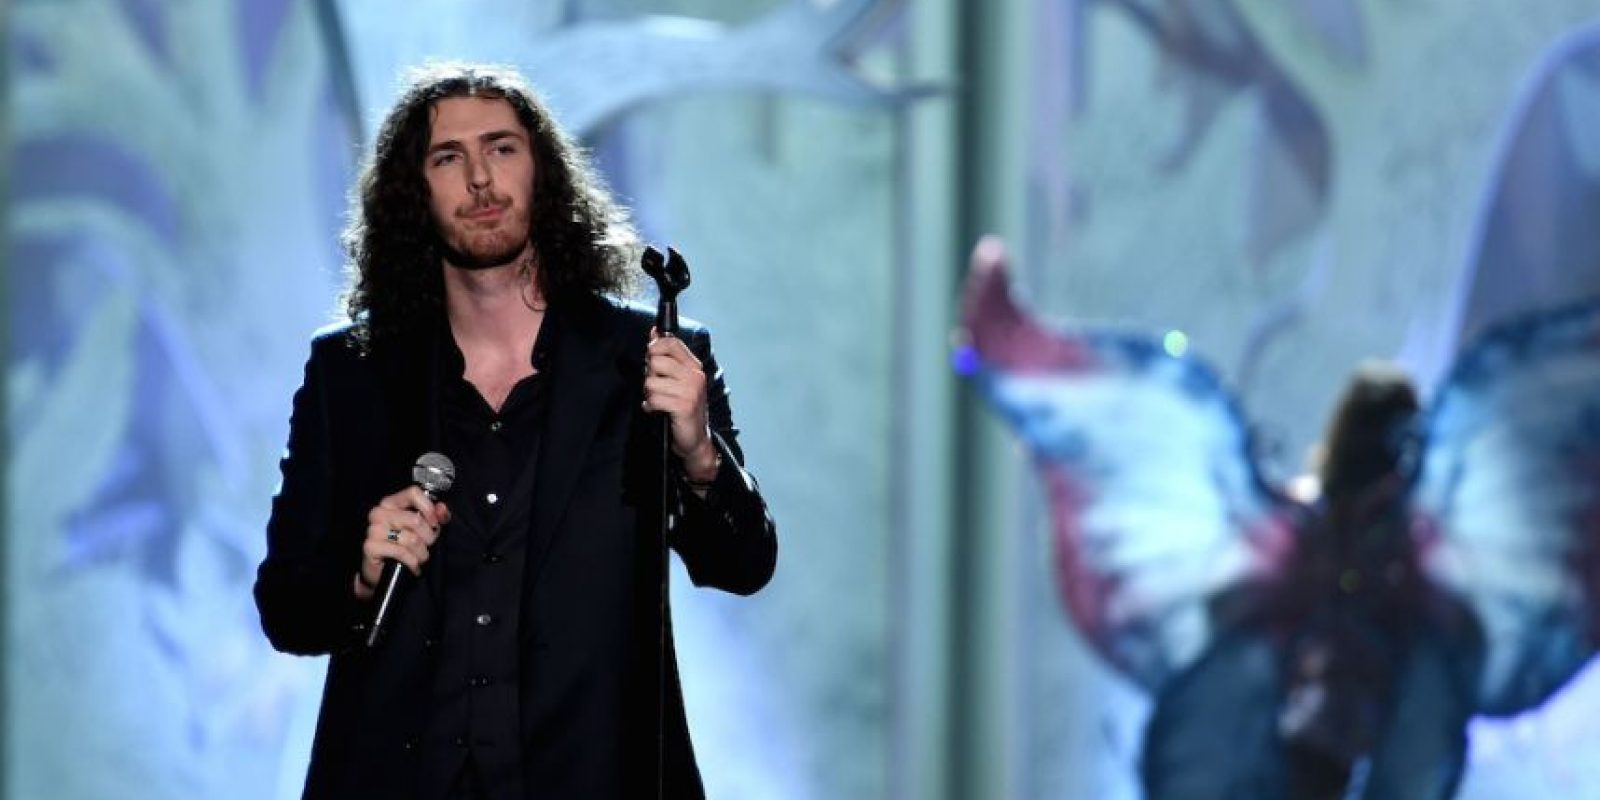 Hozier Foto: Getty Images